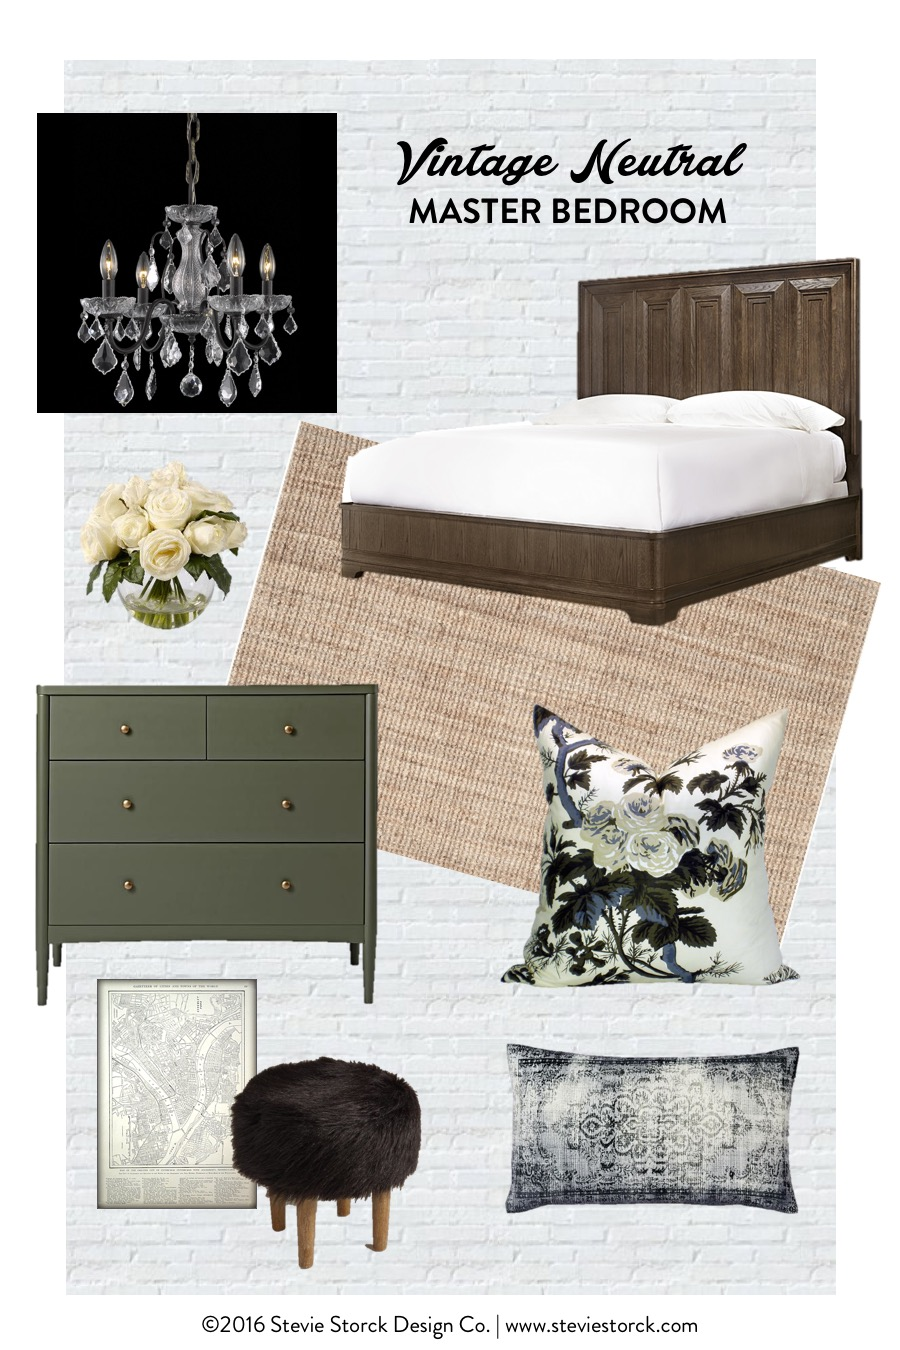 Vintage Neutral Master Bedroom Inspiration Board by Stevie Storck Design Co. - Rustic wood, olive green, antique brass, bronze and crystal chandelier, Schumacher Pyne Hollyhock, vintage map, shag fur stool, jute rug, kilim pillow #OneRoomChallenge